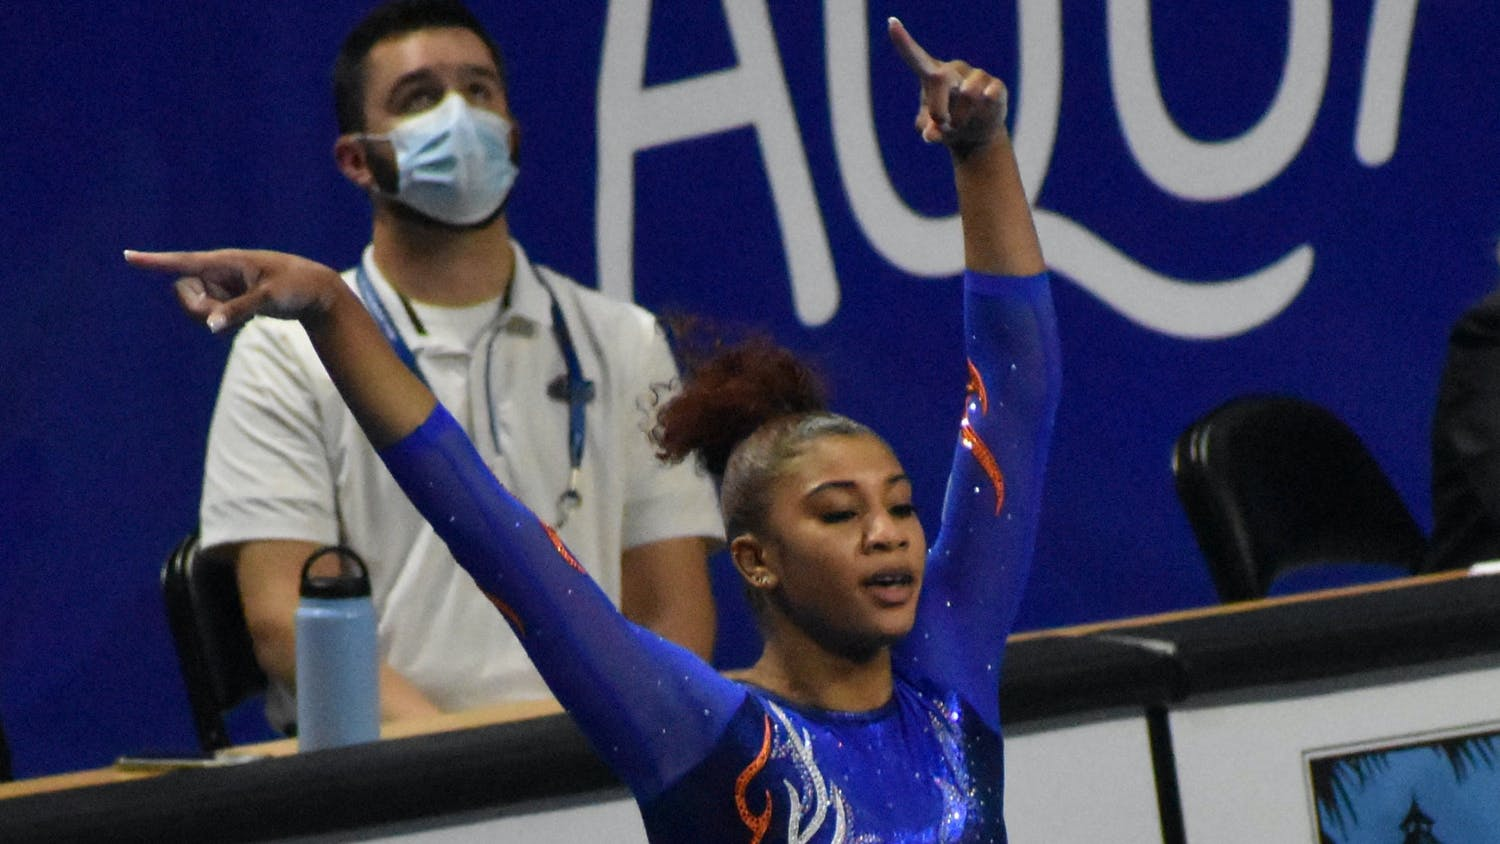 Nya Reed's 9.95 punched her team's ticket to the NCAA Semifinals. Photo from UF-Mizzou meet Jan. 29.